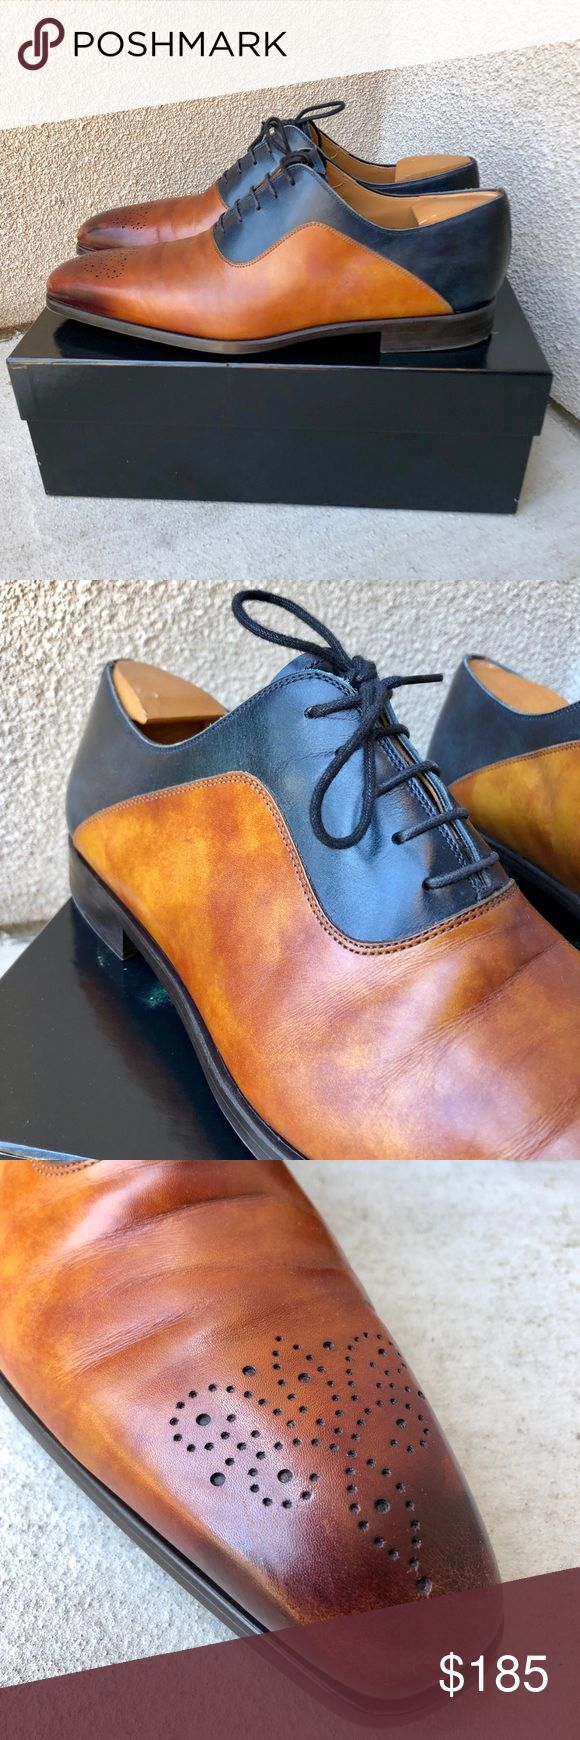 Men's Magnanni Colorblock Design Dress Shoes! Absolutely stunning pair of Magn...